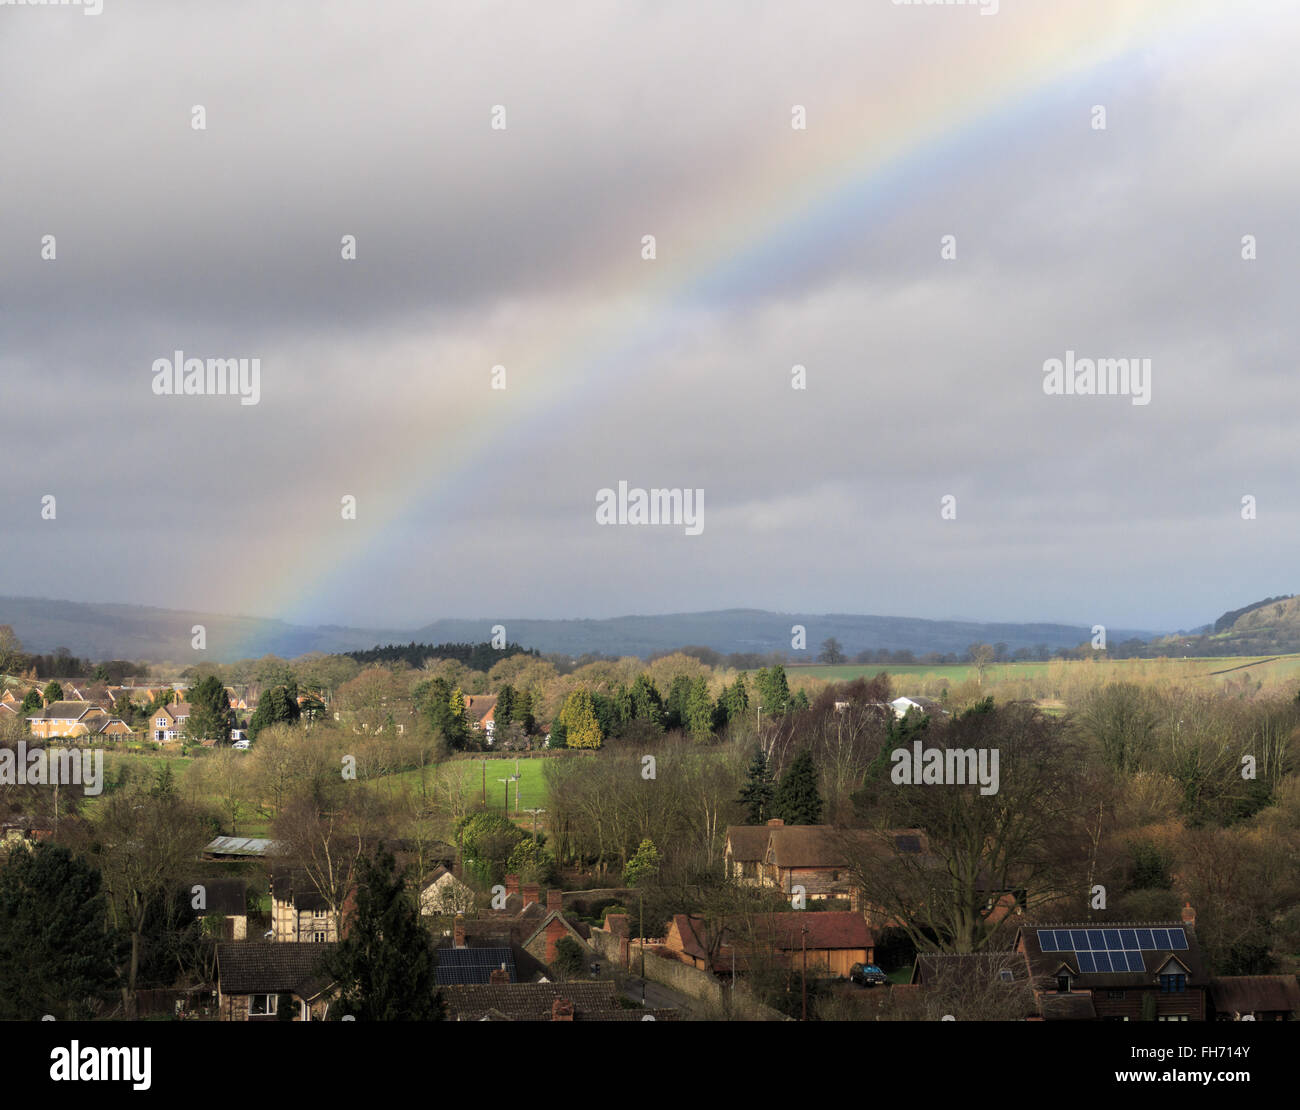 Rainbow formed over the town of Ludlow. In Ludlow, England. On 21st February 2016. - Stock Image